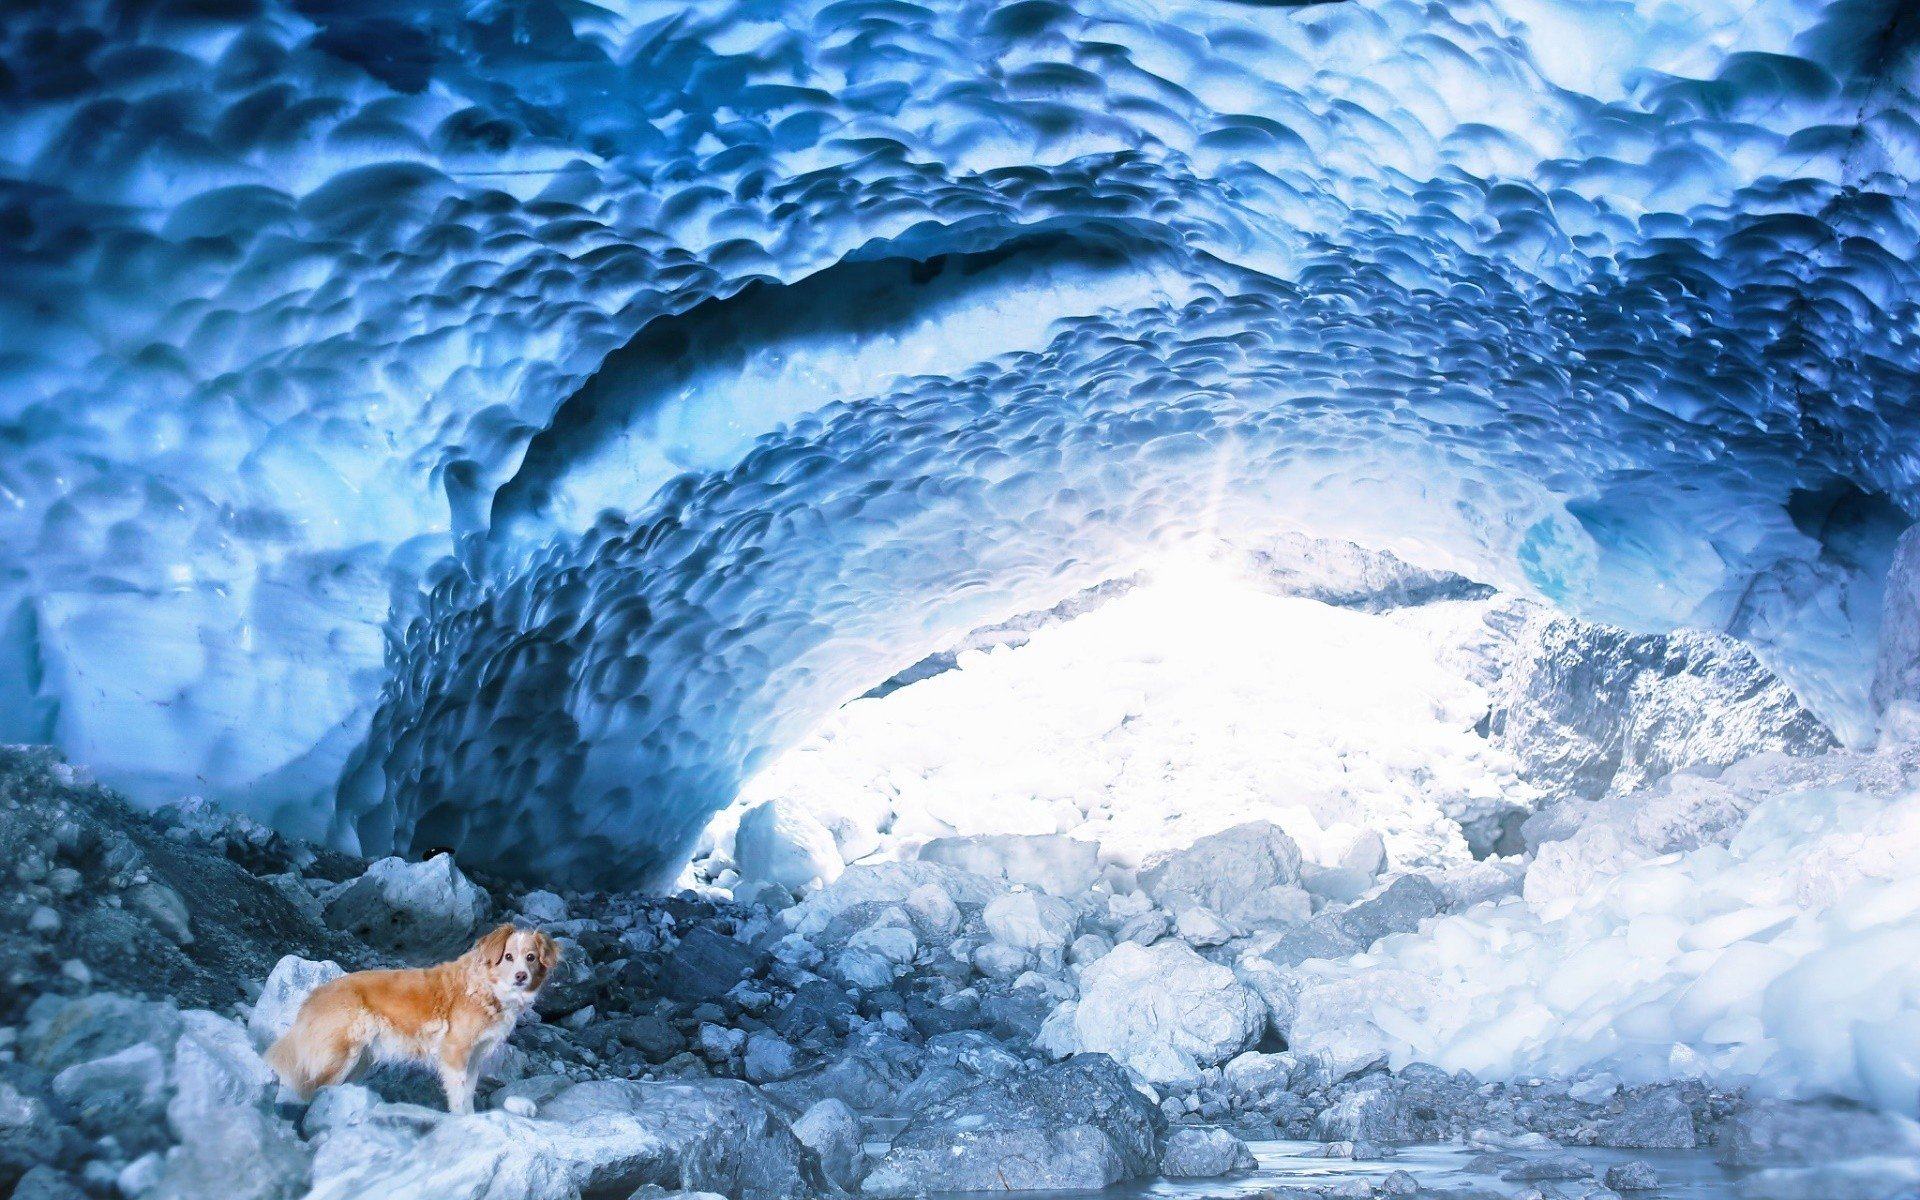 Nature Xp Wallpaper For Mobile: Cave, Ice, Dog, Animals, Nature HD Wallpapers / Desktop